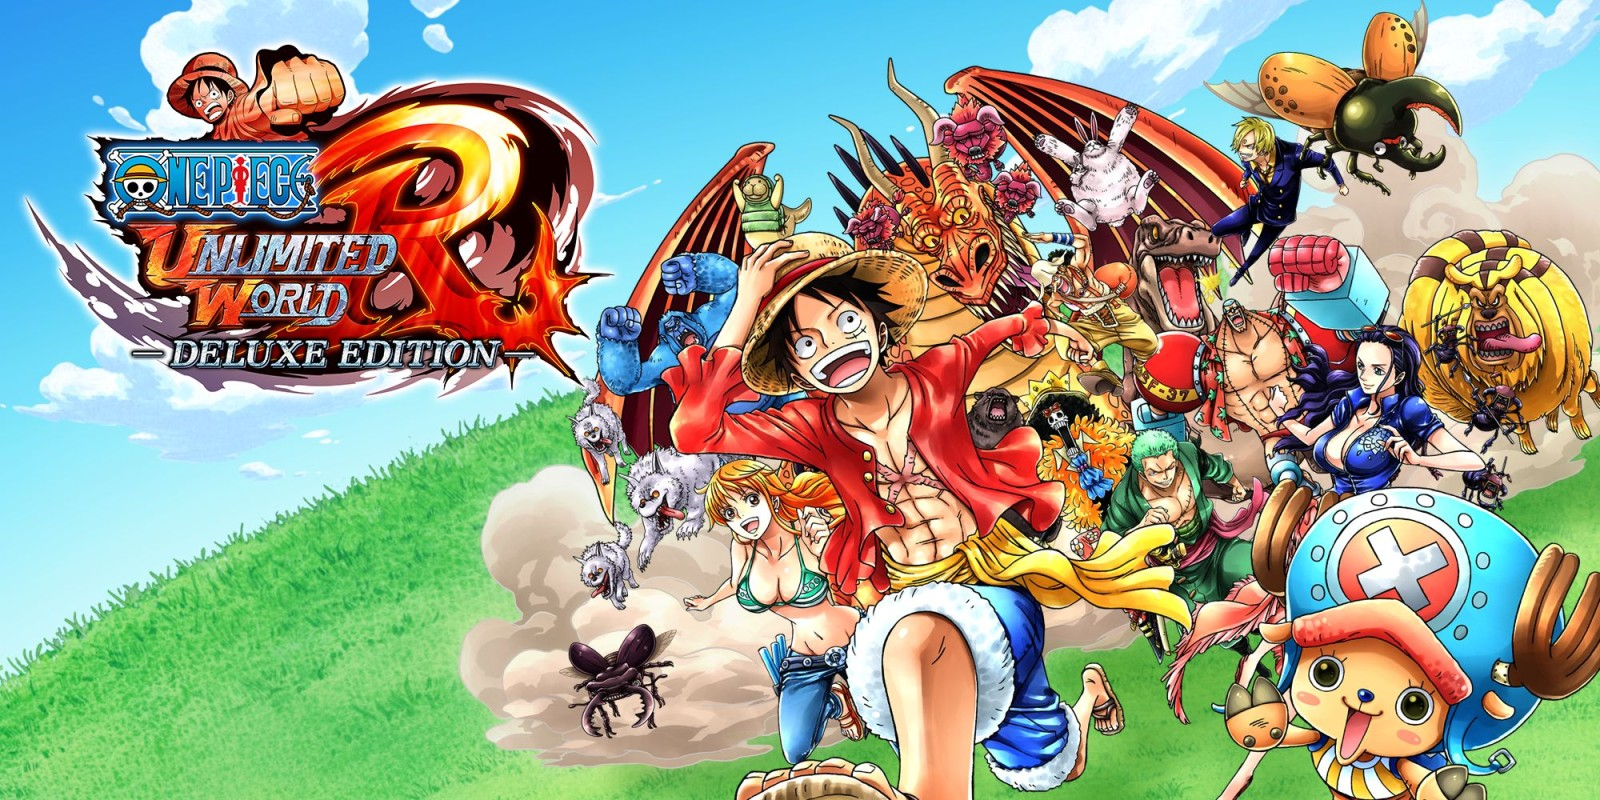 Fire Wallpaper Hd One Piece Unlimited World Red Deluxe Edition Nintendo